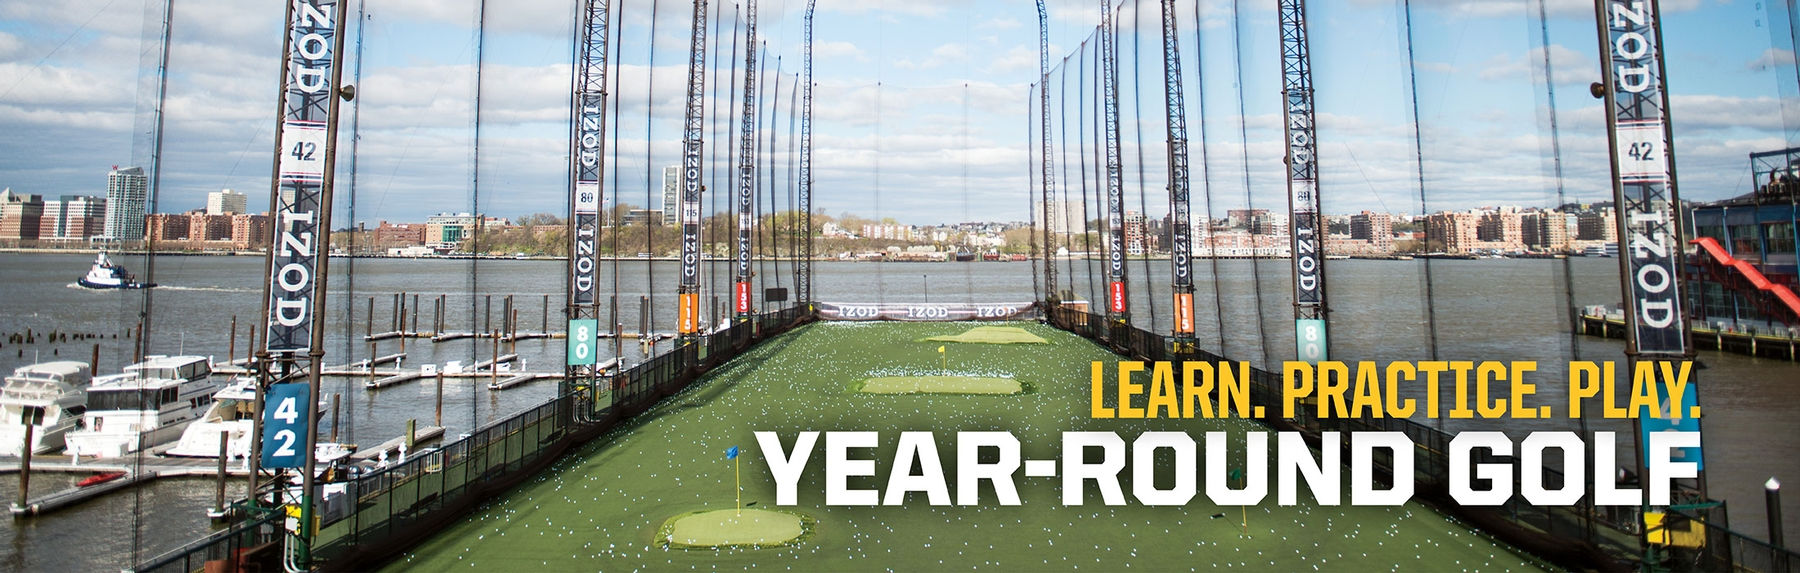 Learn Practice Play The Golf Club At Chelsea Piers